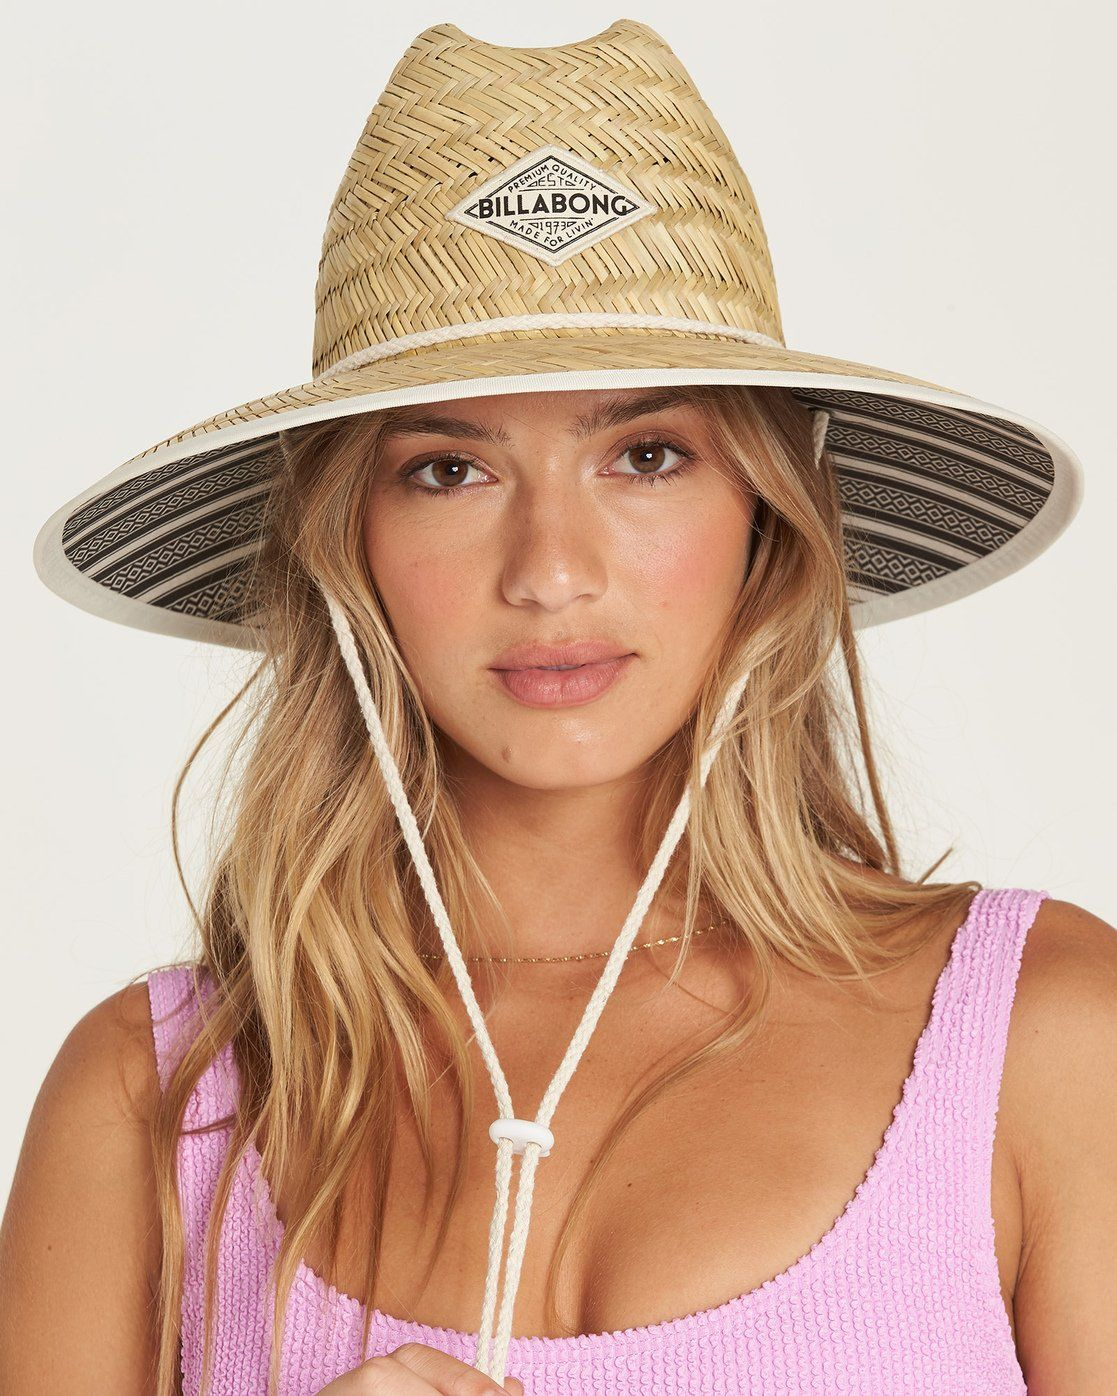 Tipton Straw Hat Jahwnbti Stylish Hats Outfits With Hats Beach Hat